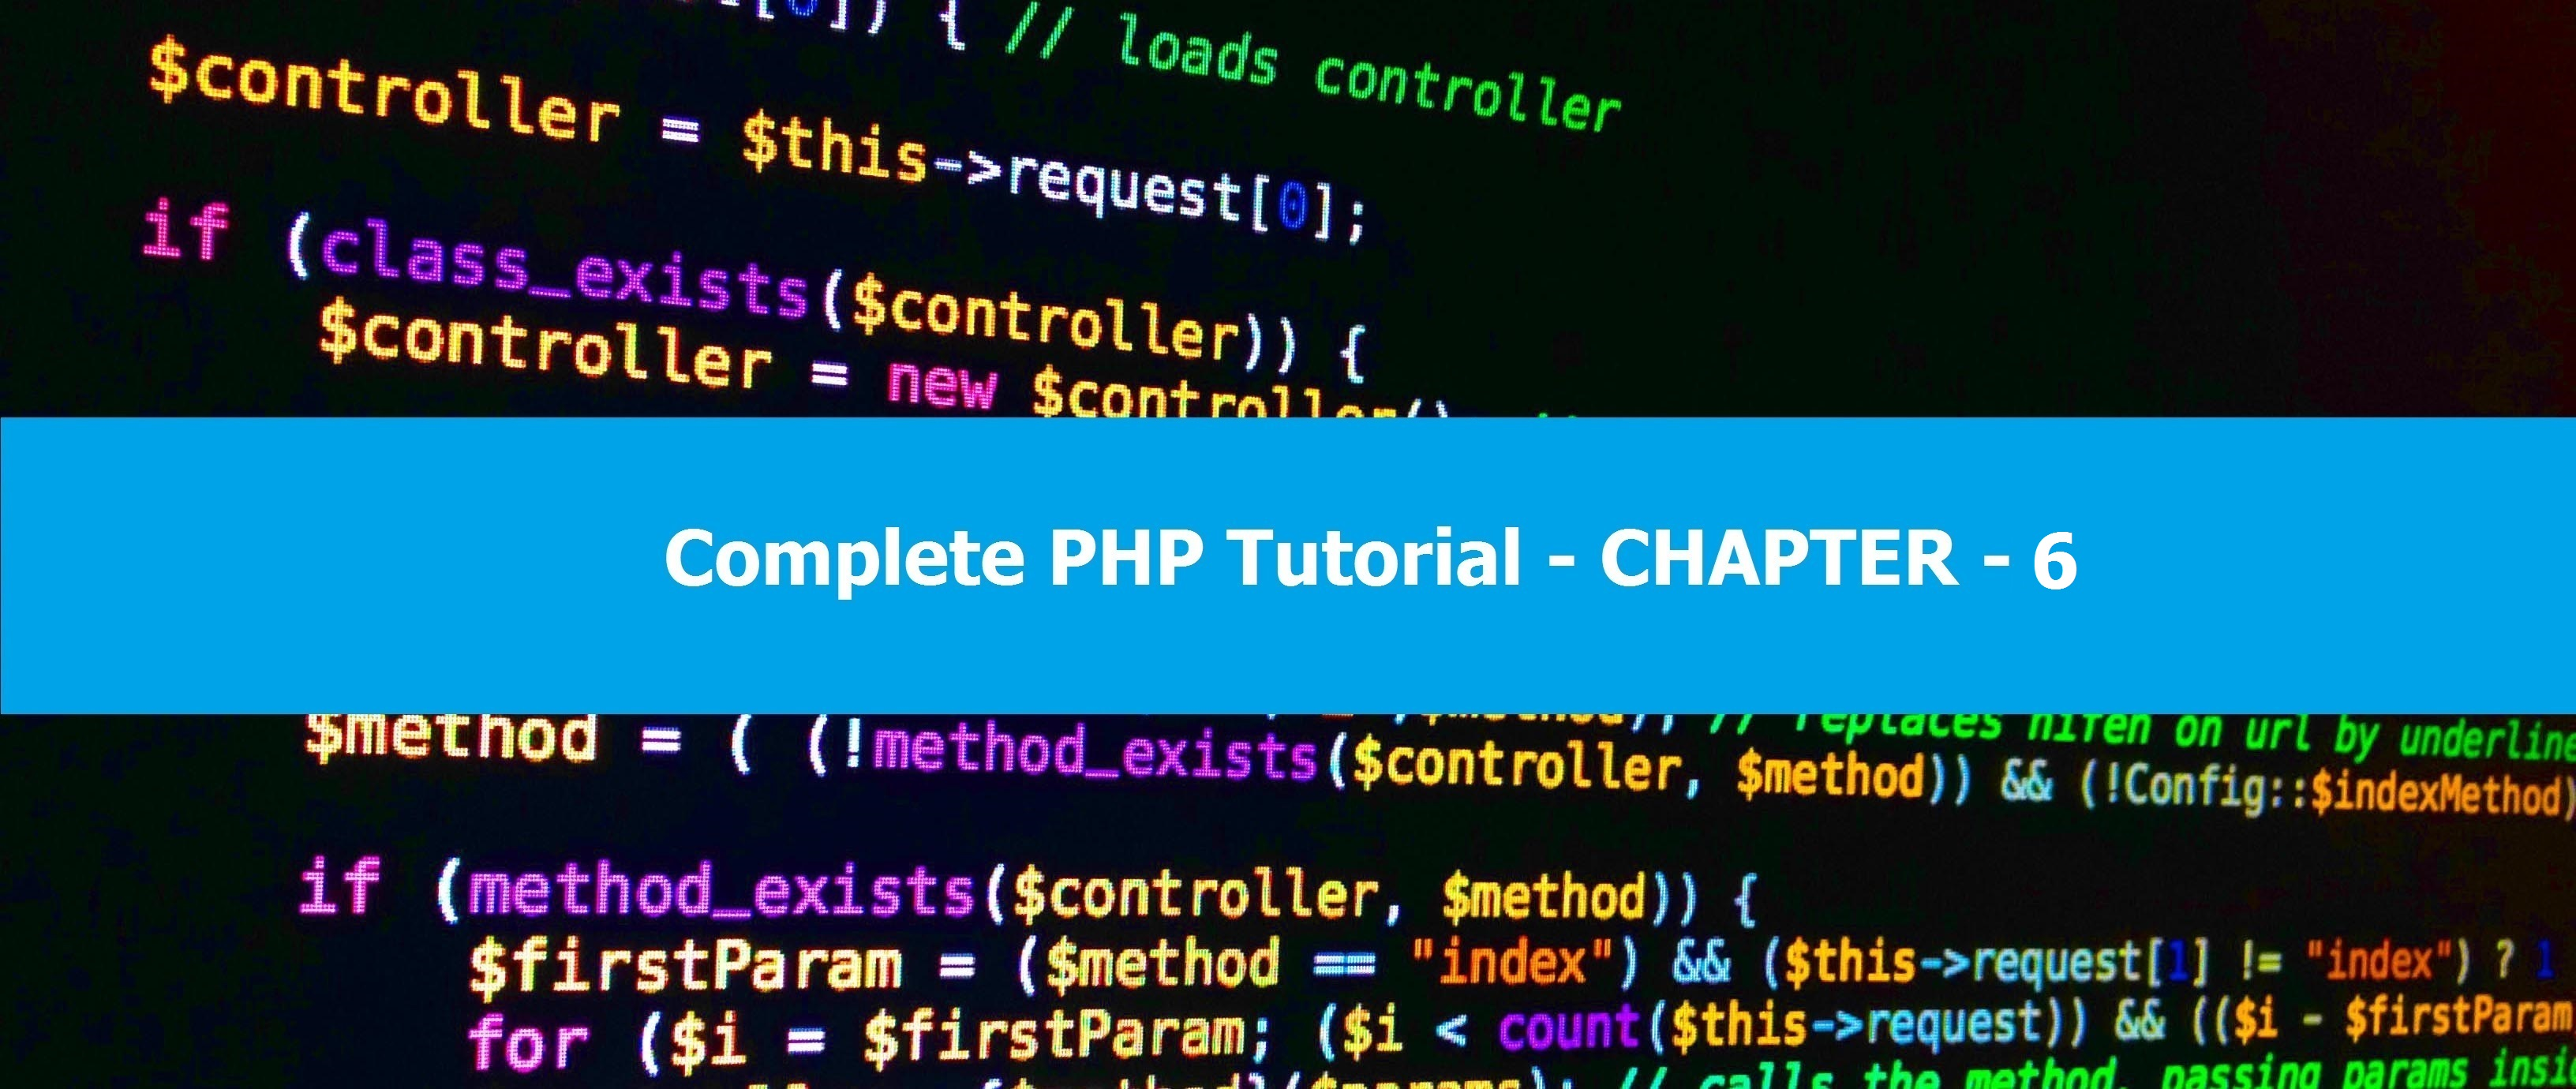 Complete PHP Tutorial - Chapter 8 - Yeah Hub